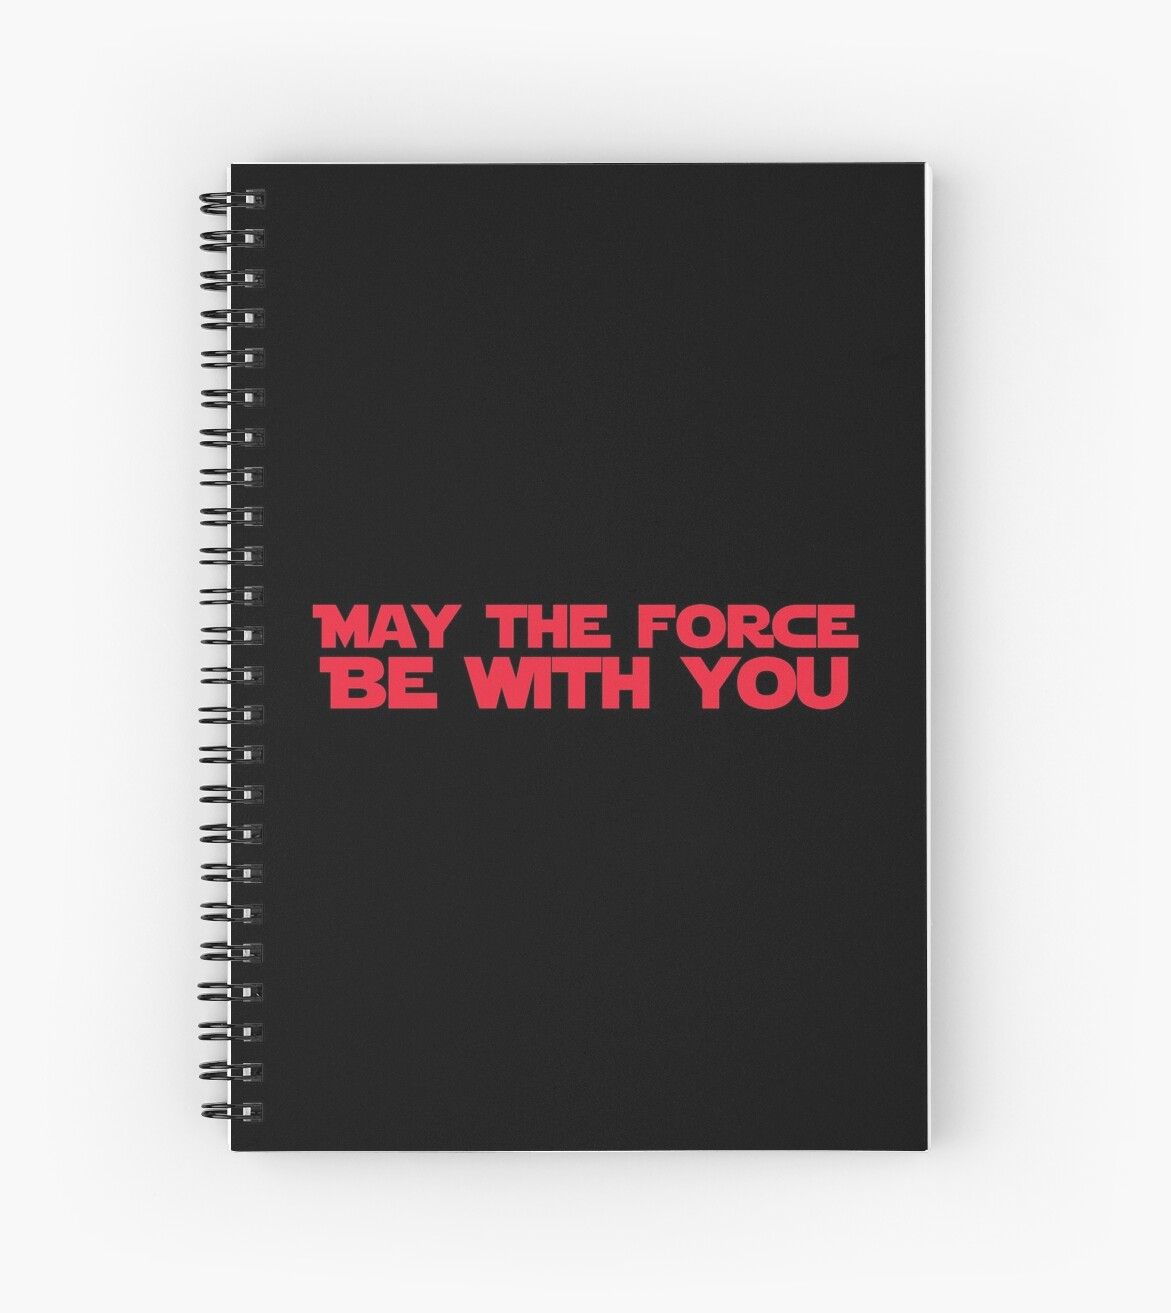 STAR WARS - May The Force Be With You by Isaac Pierpont